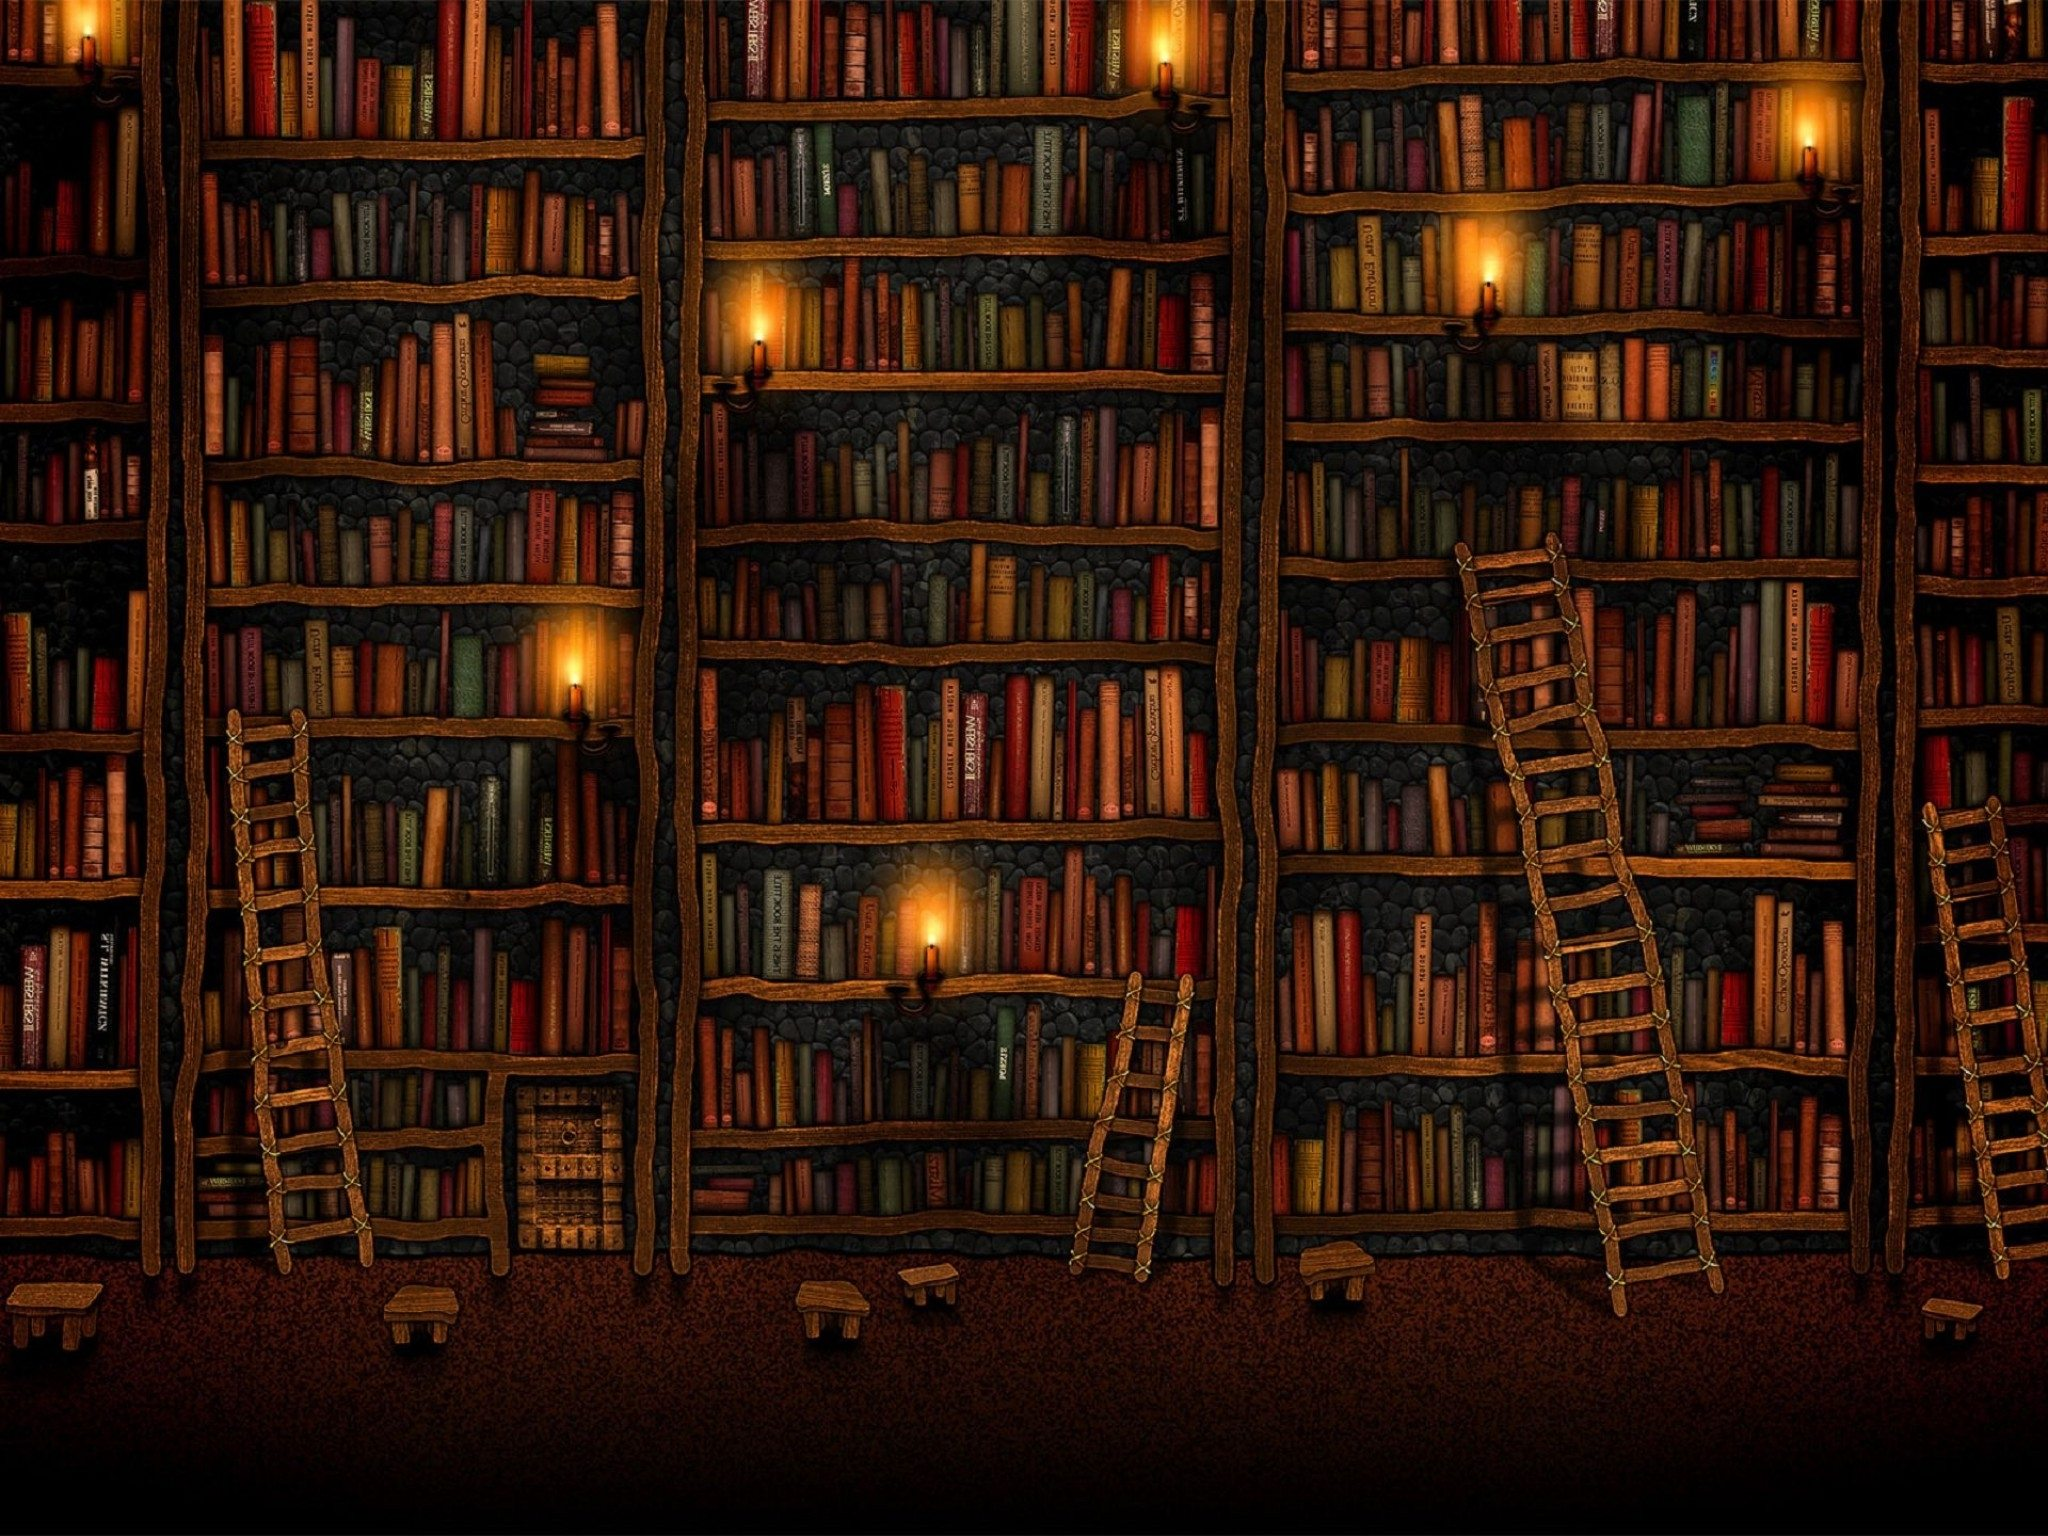 Download Wallpaper Looks Like Books Gallery